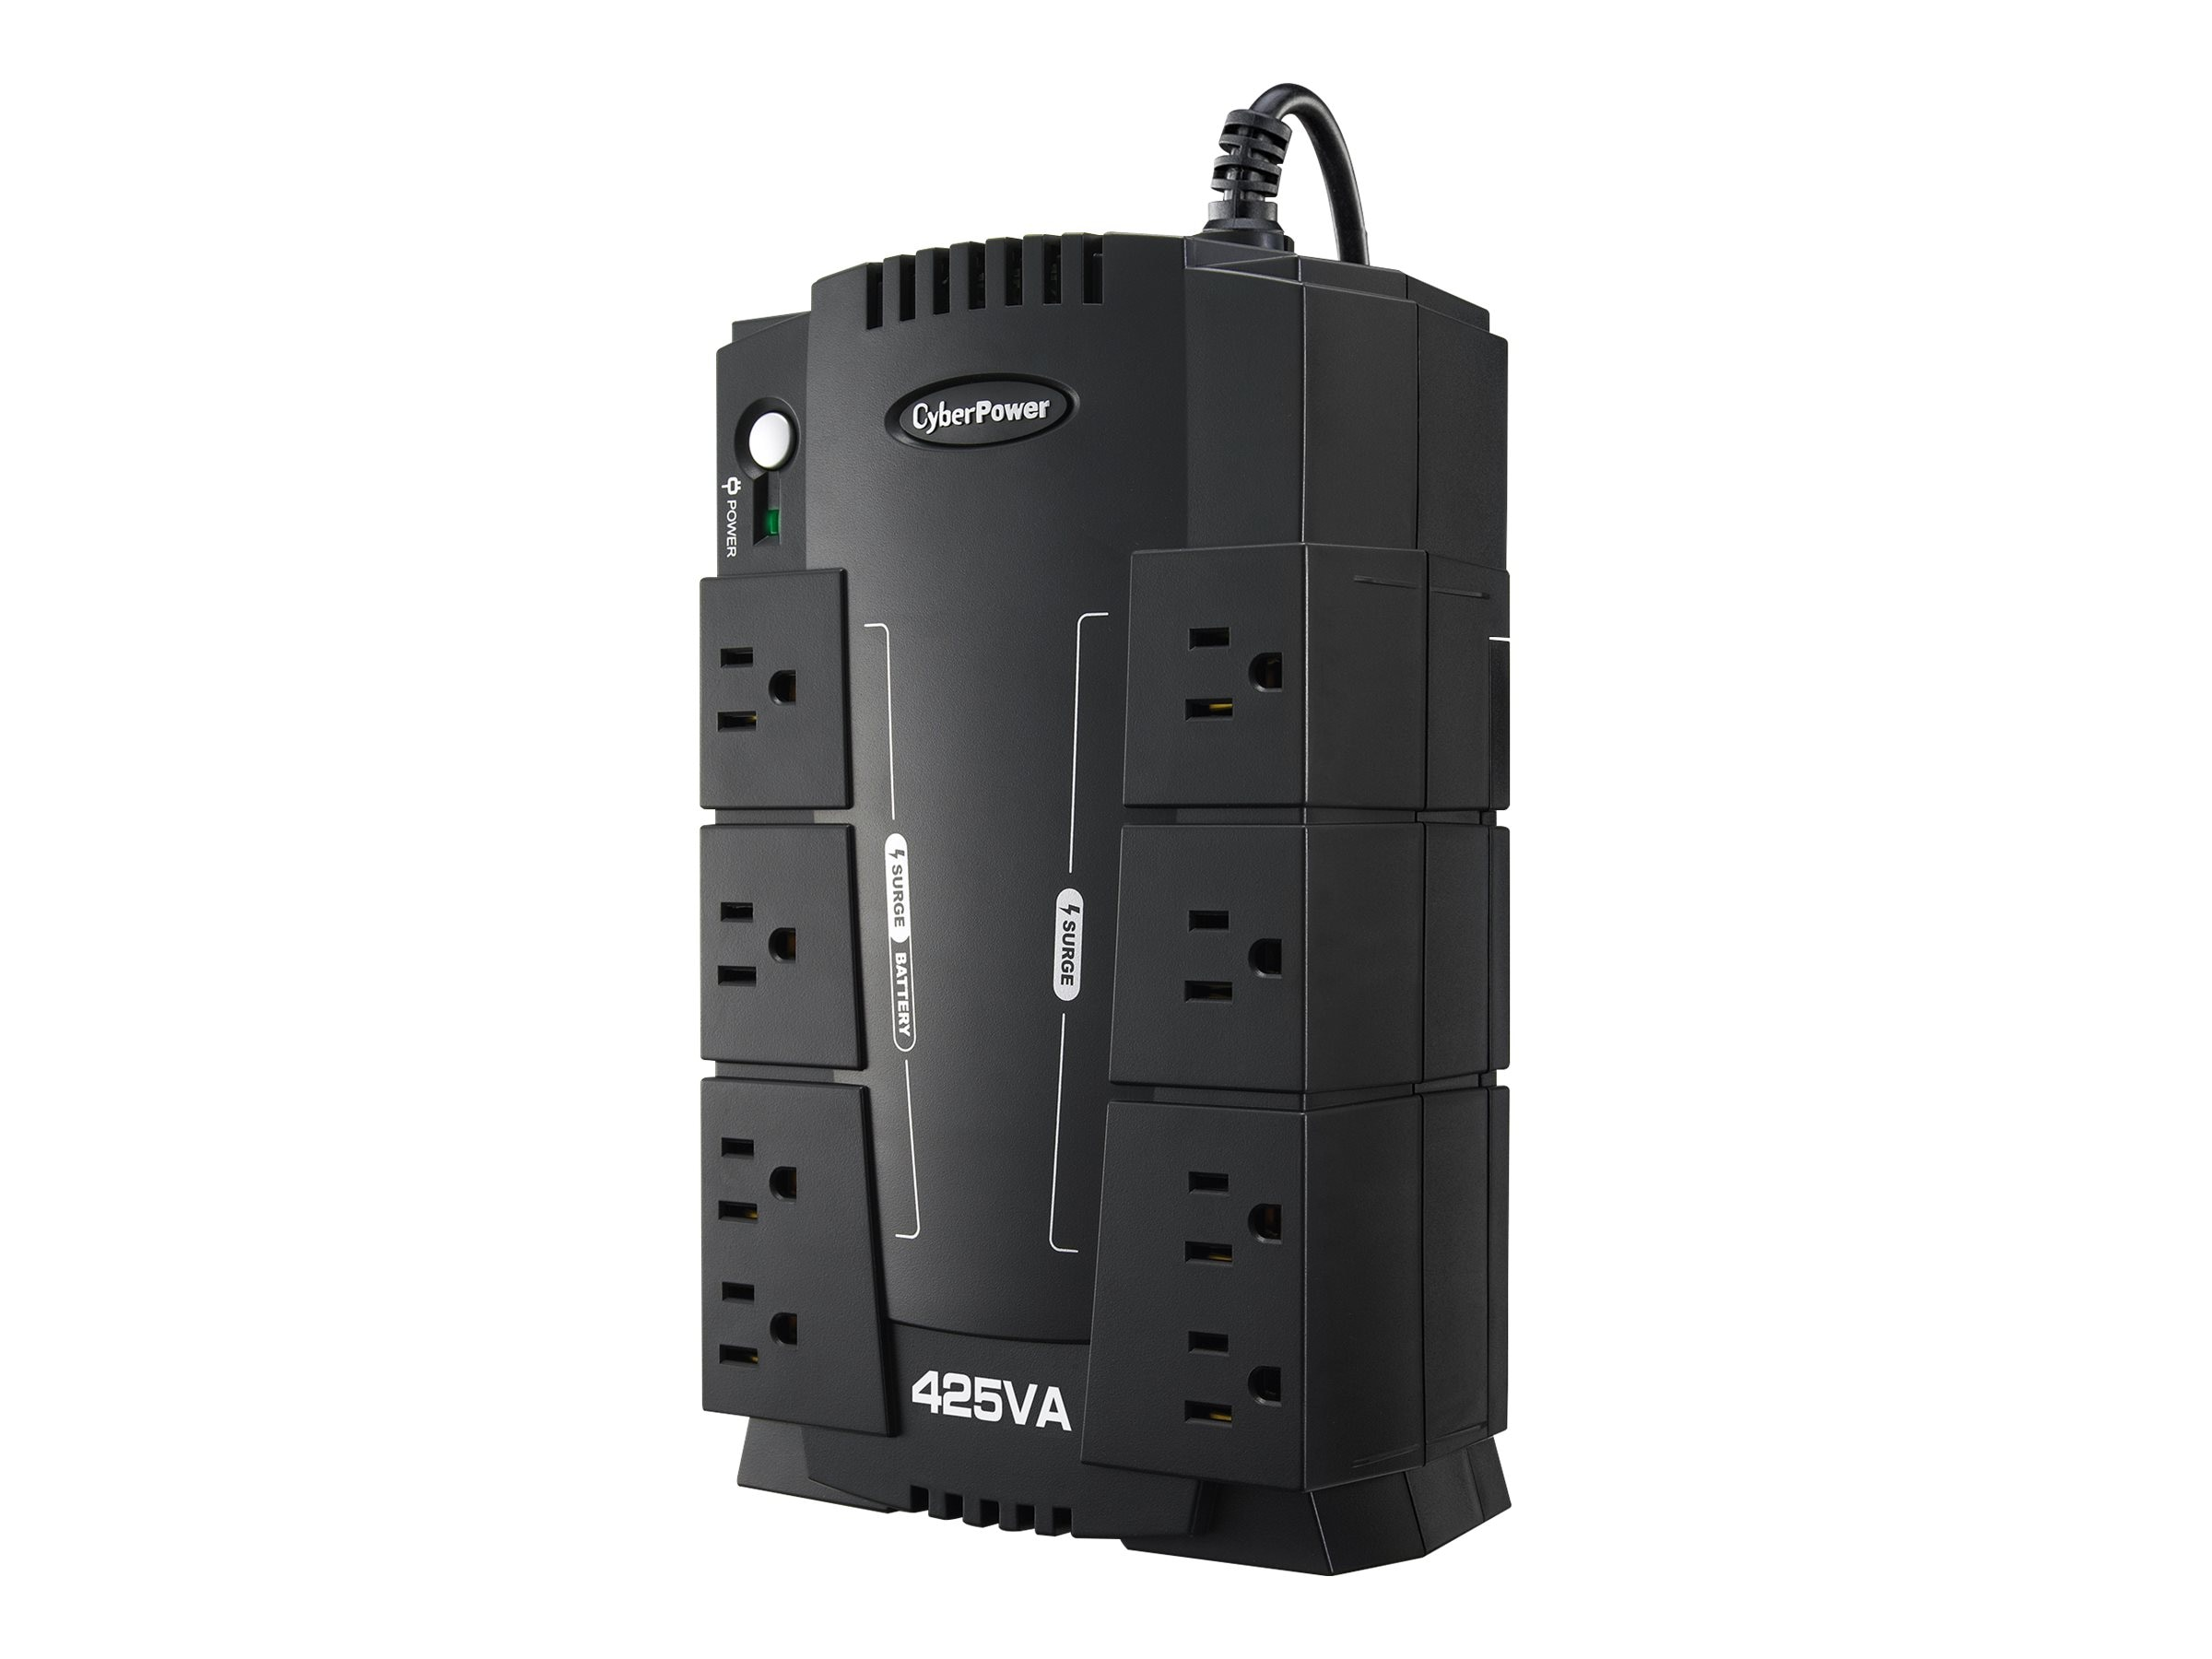 CyberPower 425VA Standby Green UPS (8) 5-15R Outlets USB, Management Software, CP425SLG